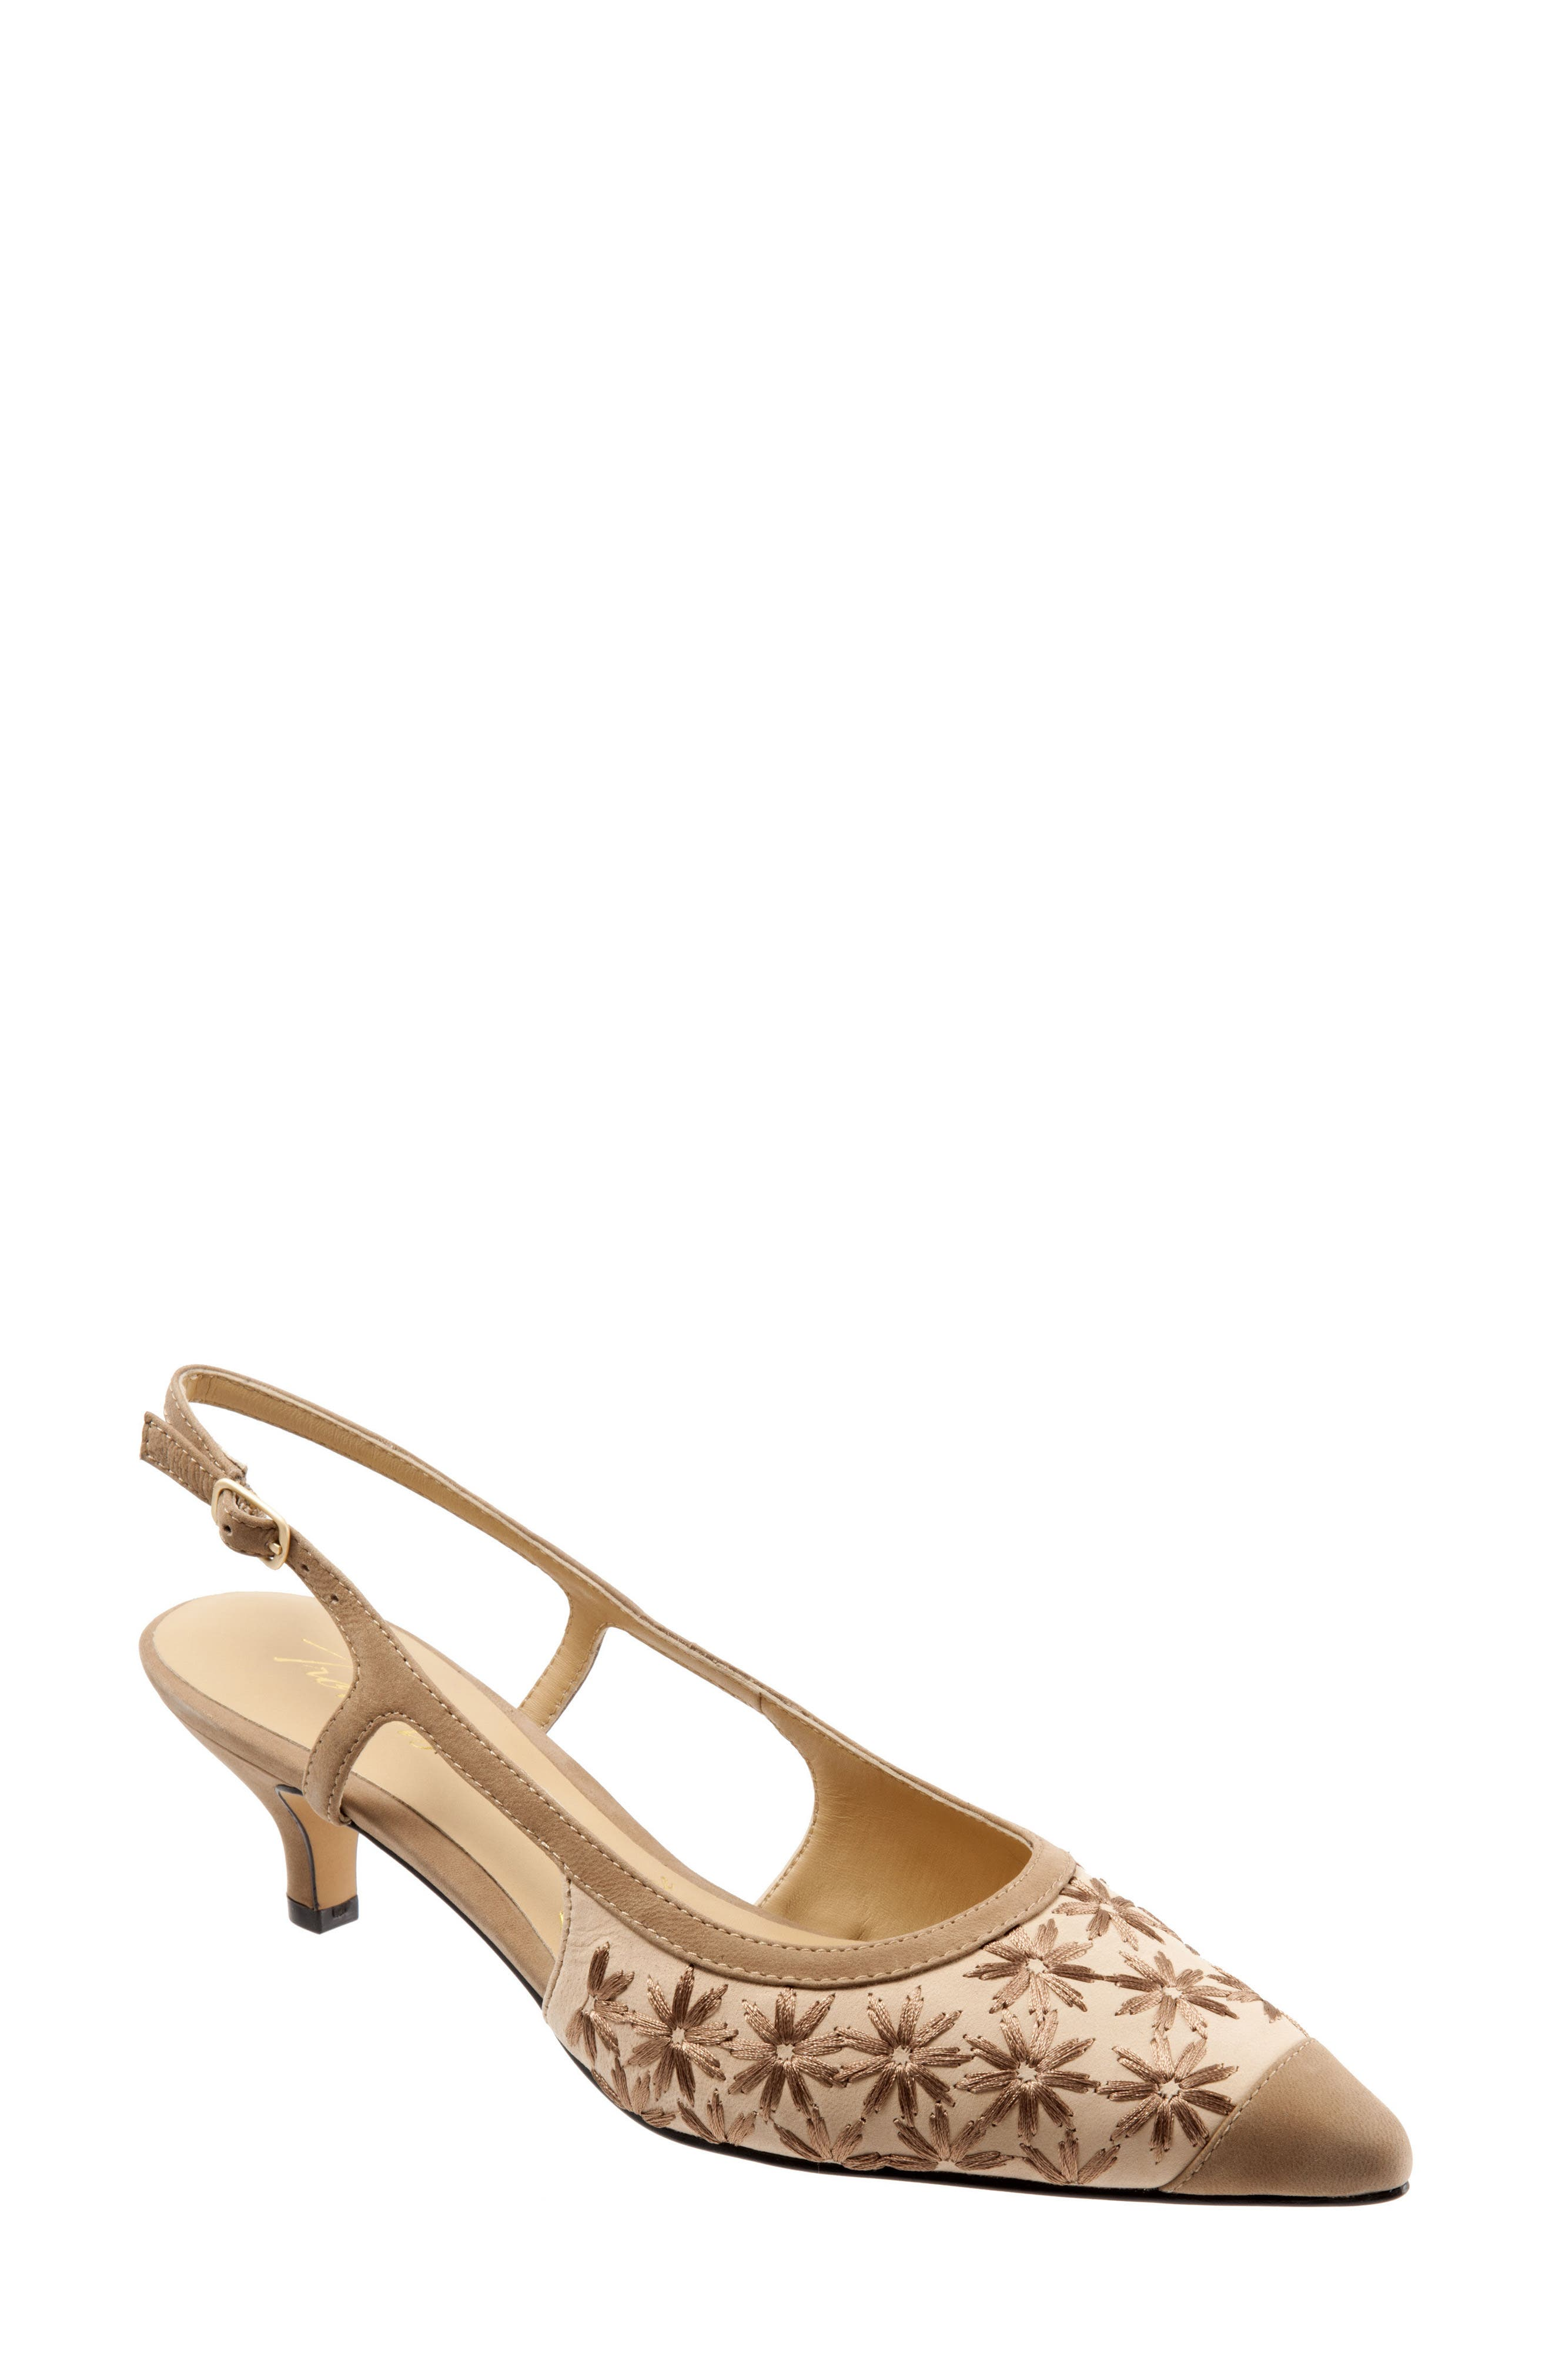 'Kimberly' Woven Leather Slingback Pump,                             Main thumbnail 1, color,                             Dark Tan/ Sand/ Bronze Leather